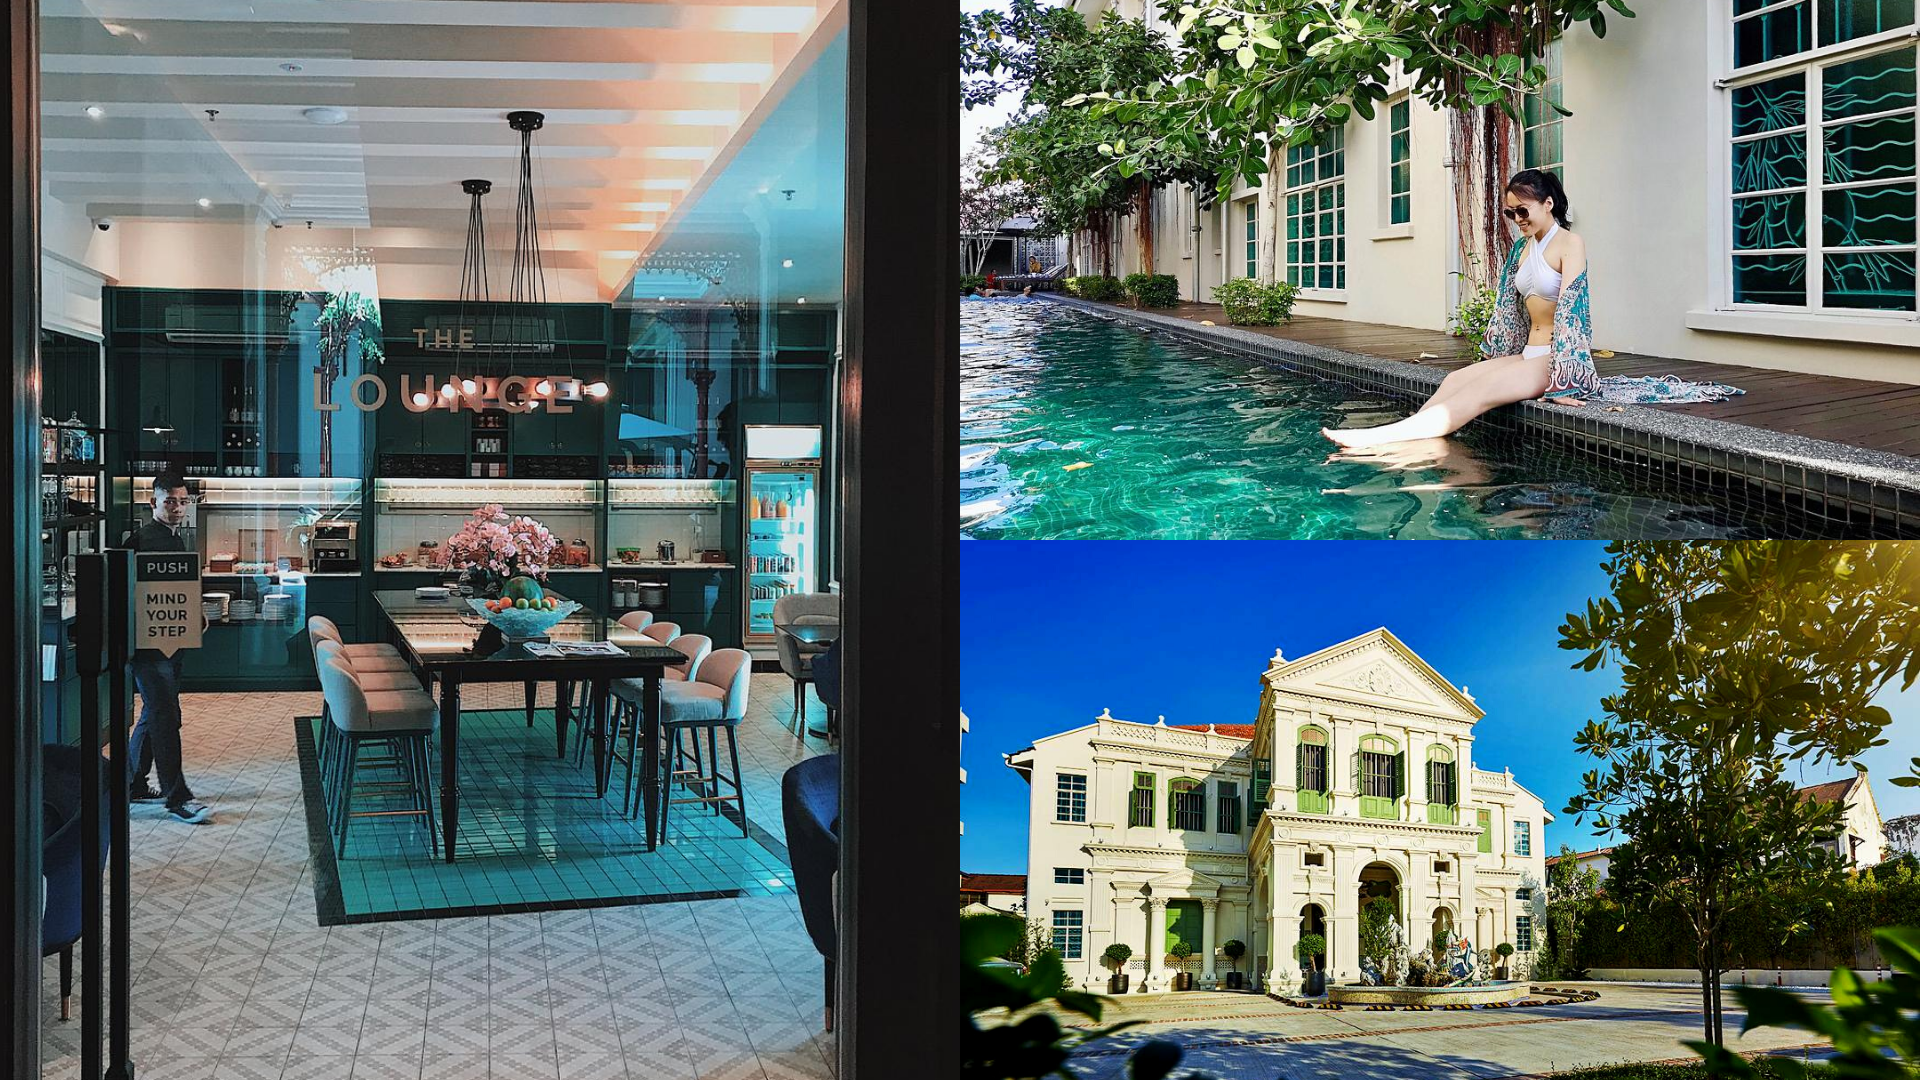 The Edison George Town: Spend A Night In An Elegant Colonial Mansion With A Timeless Charm